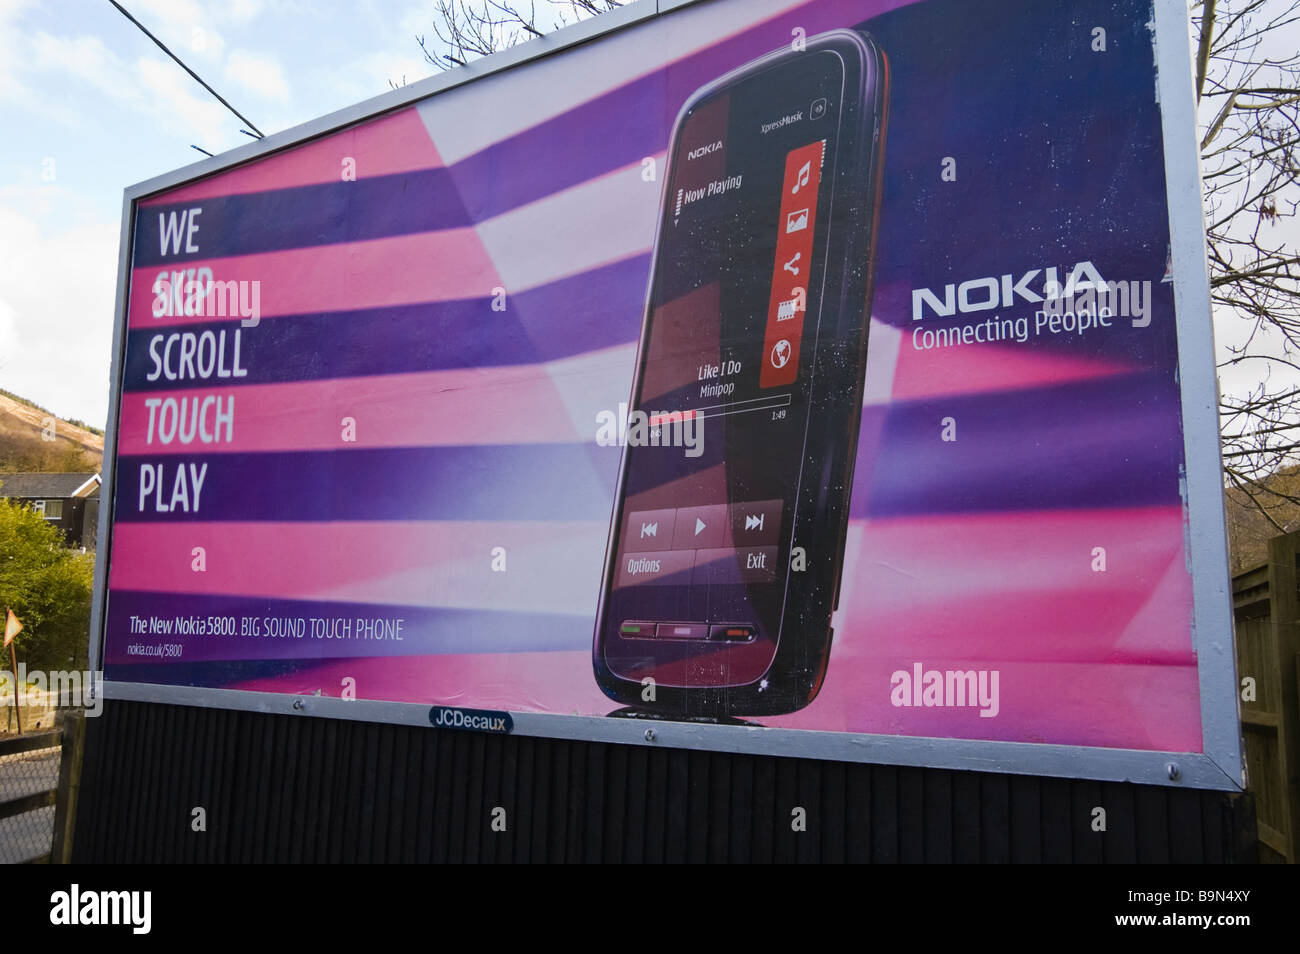 JCDecaux advertising billboard for Nokia mobile phone at Blaina in South Wales Valleys UK - Stock Image